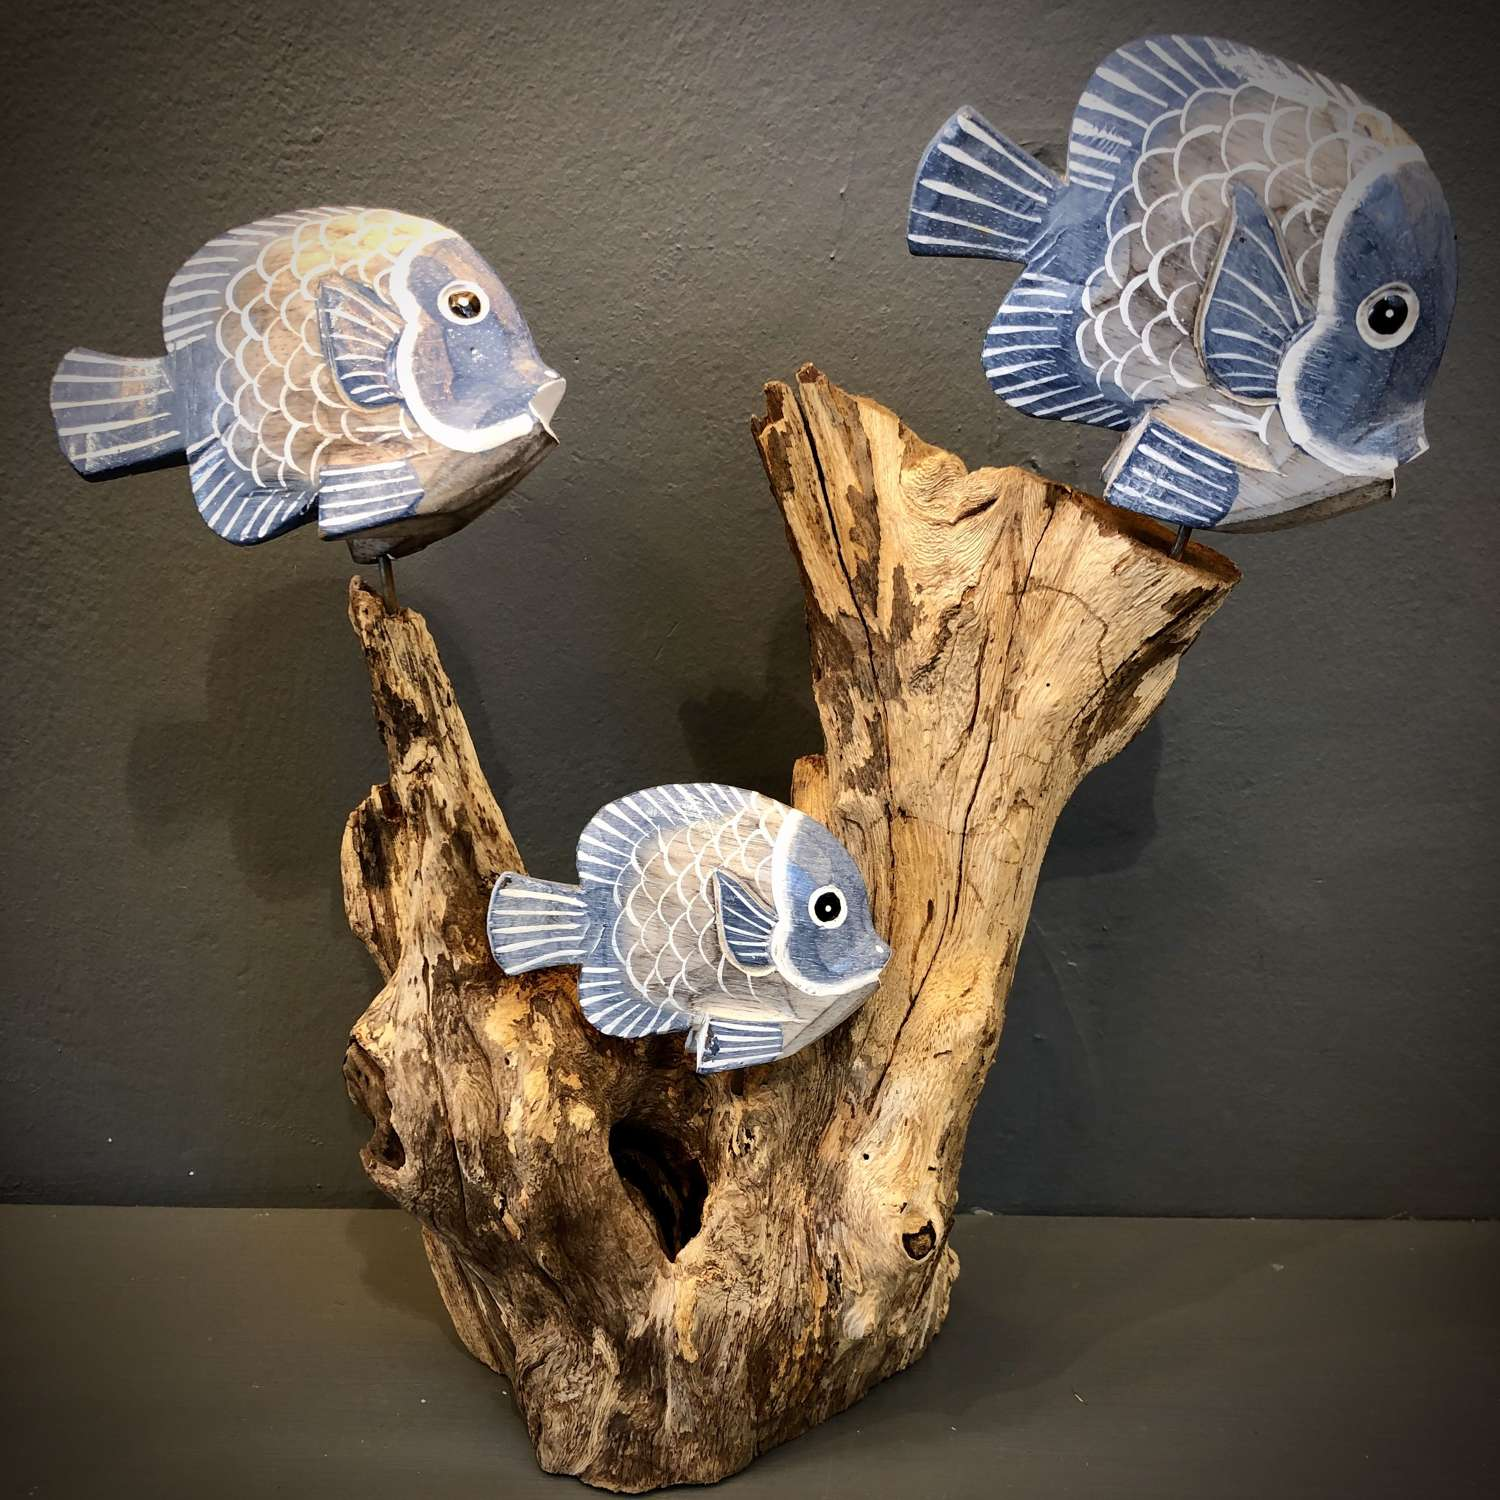 Carved fish on a wooden reef